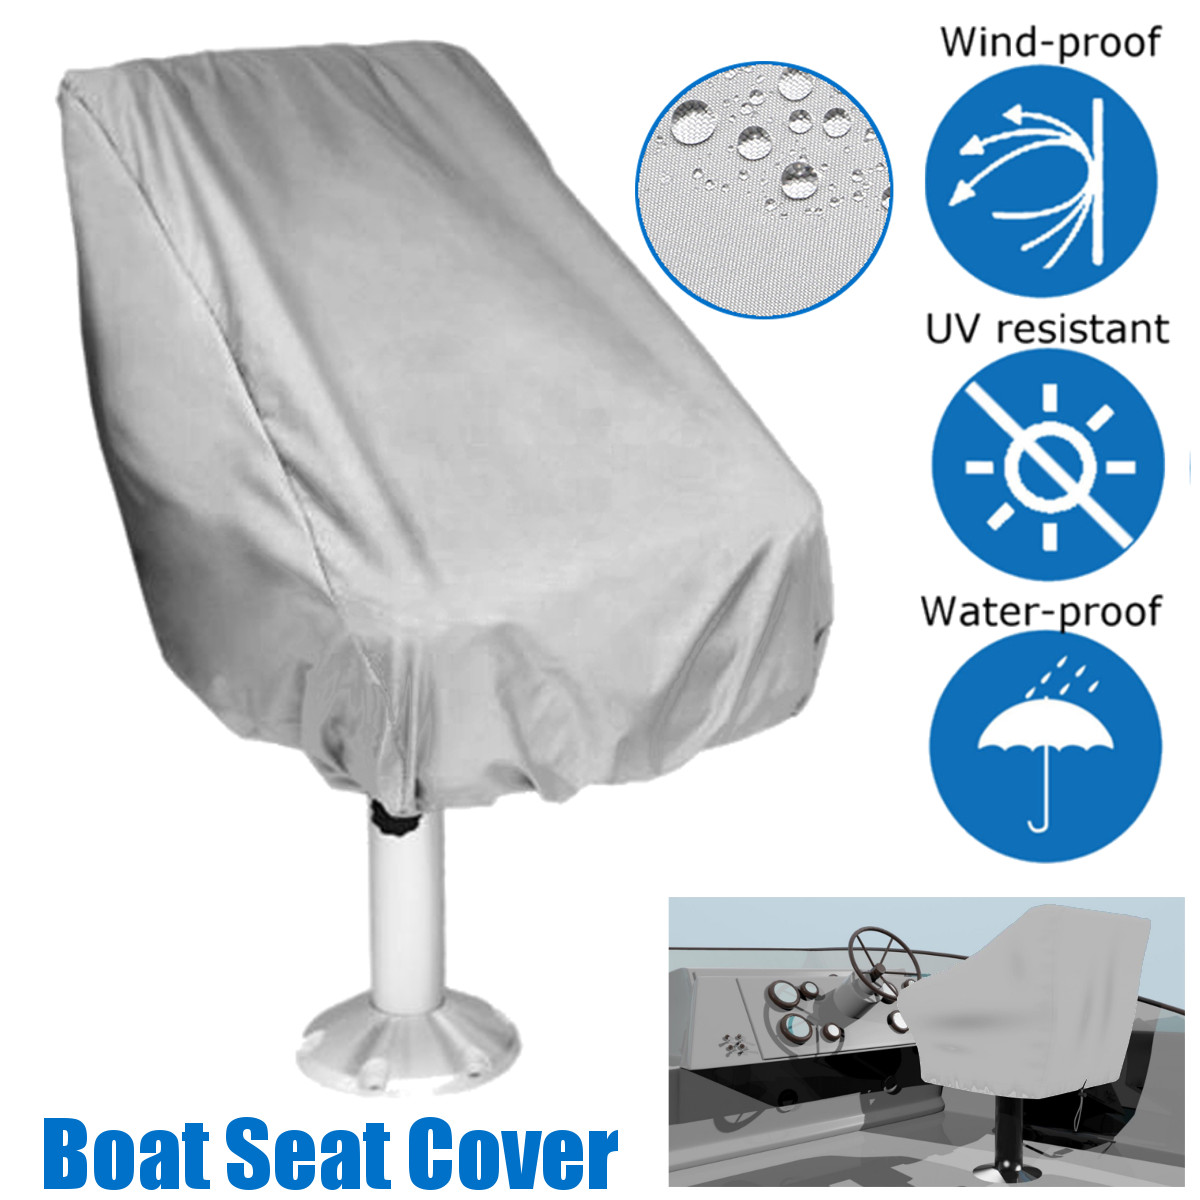 Boat Cover Initiative 56*61*64cm Boat Seat Cover Dust Waterproof Seat Cover Elastic Closure Outdoor Yacht Ship Lift Rotate Chair/table Furniture Cover Automobiles & Motorcycles